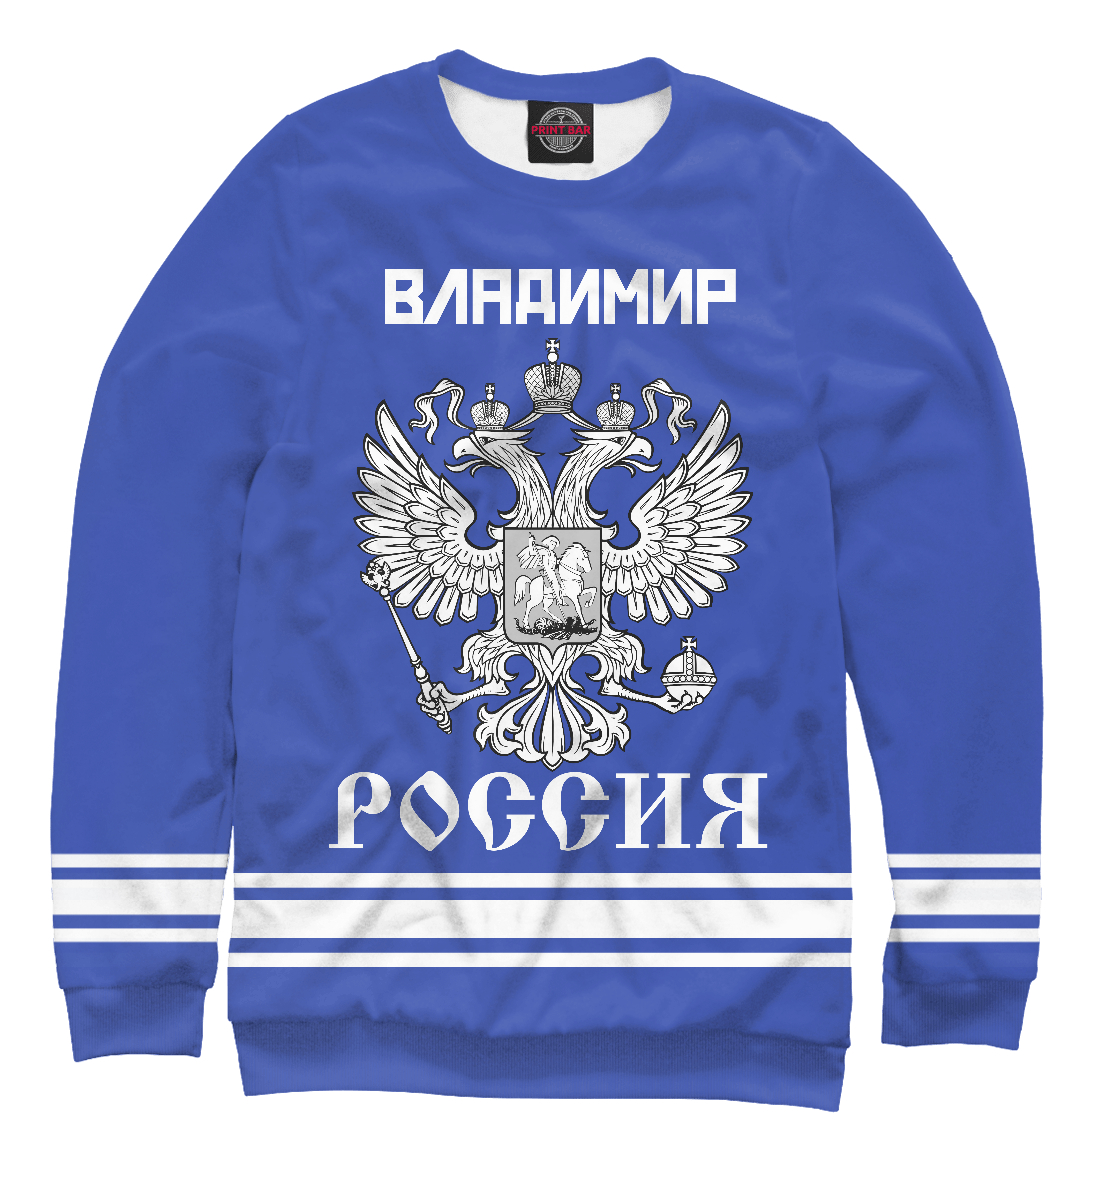 Купить ВЛАДИМИР sport russia collection, Printbar, Свитшоты, IMR-336663-swi-2